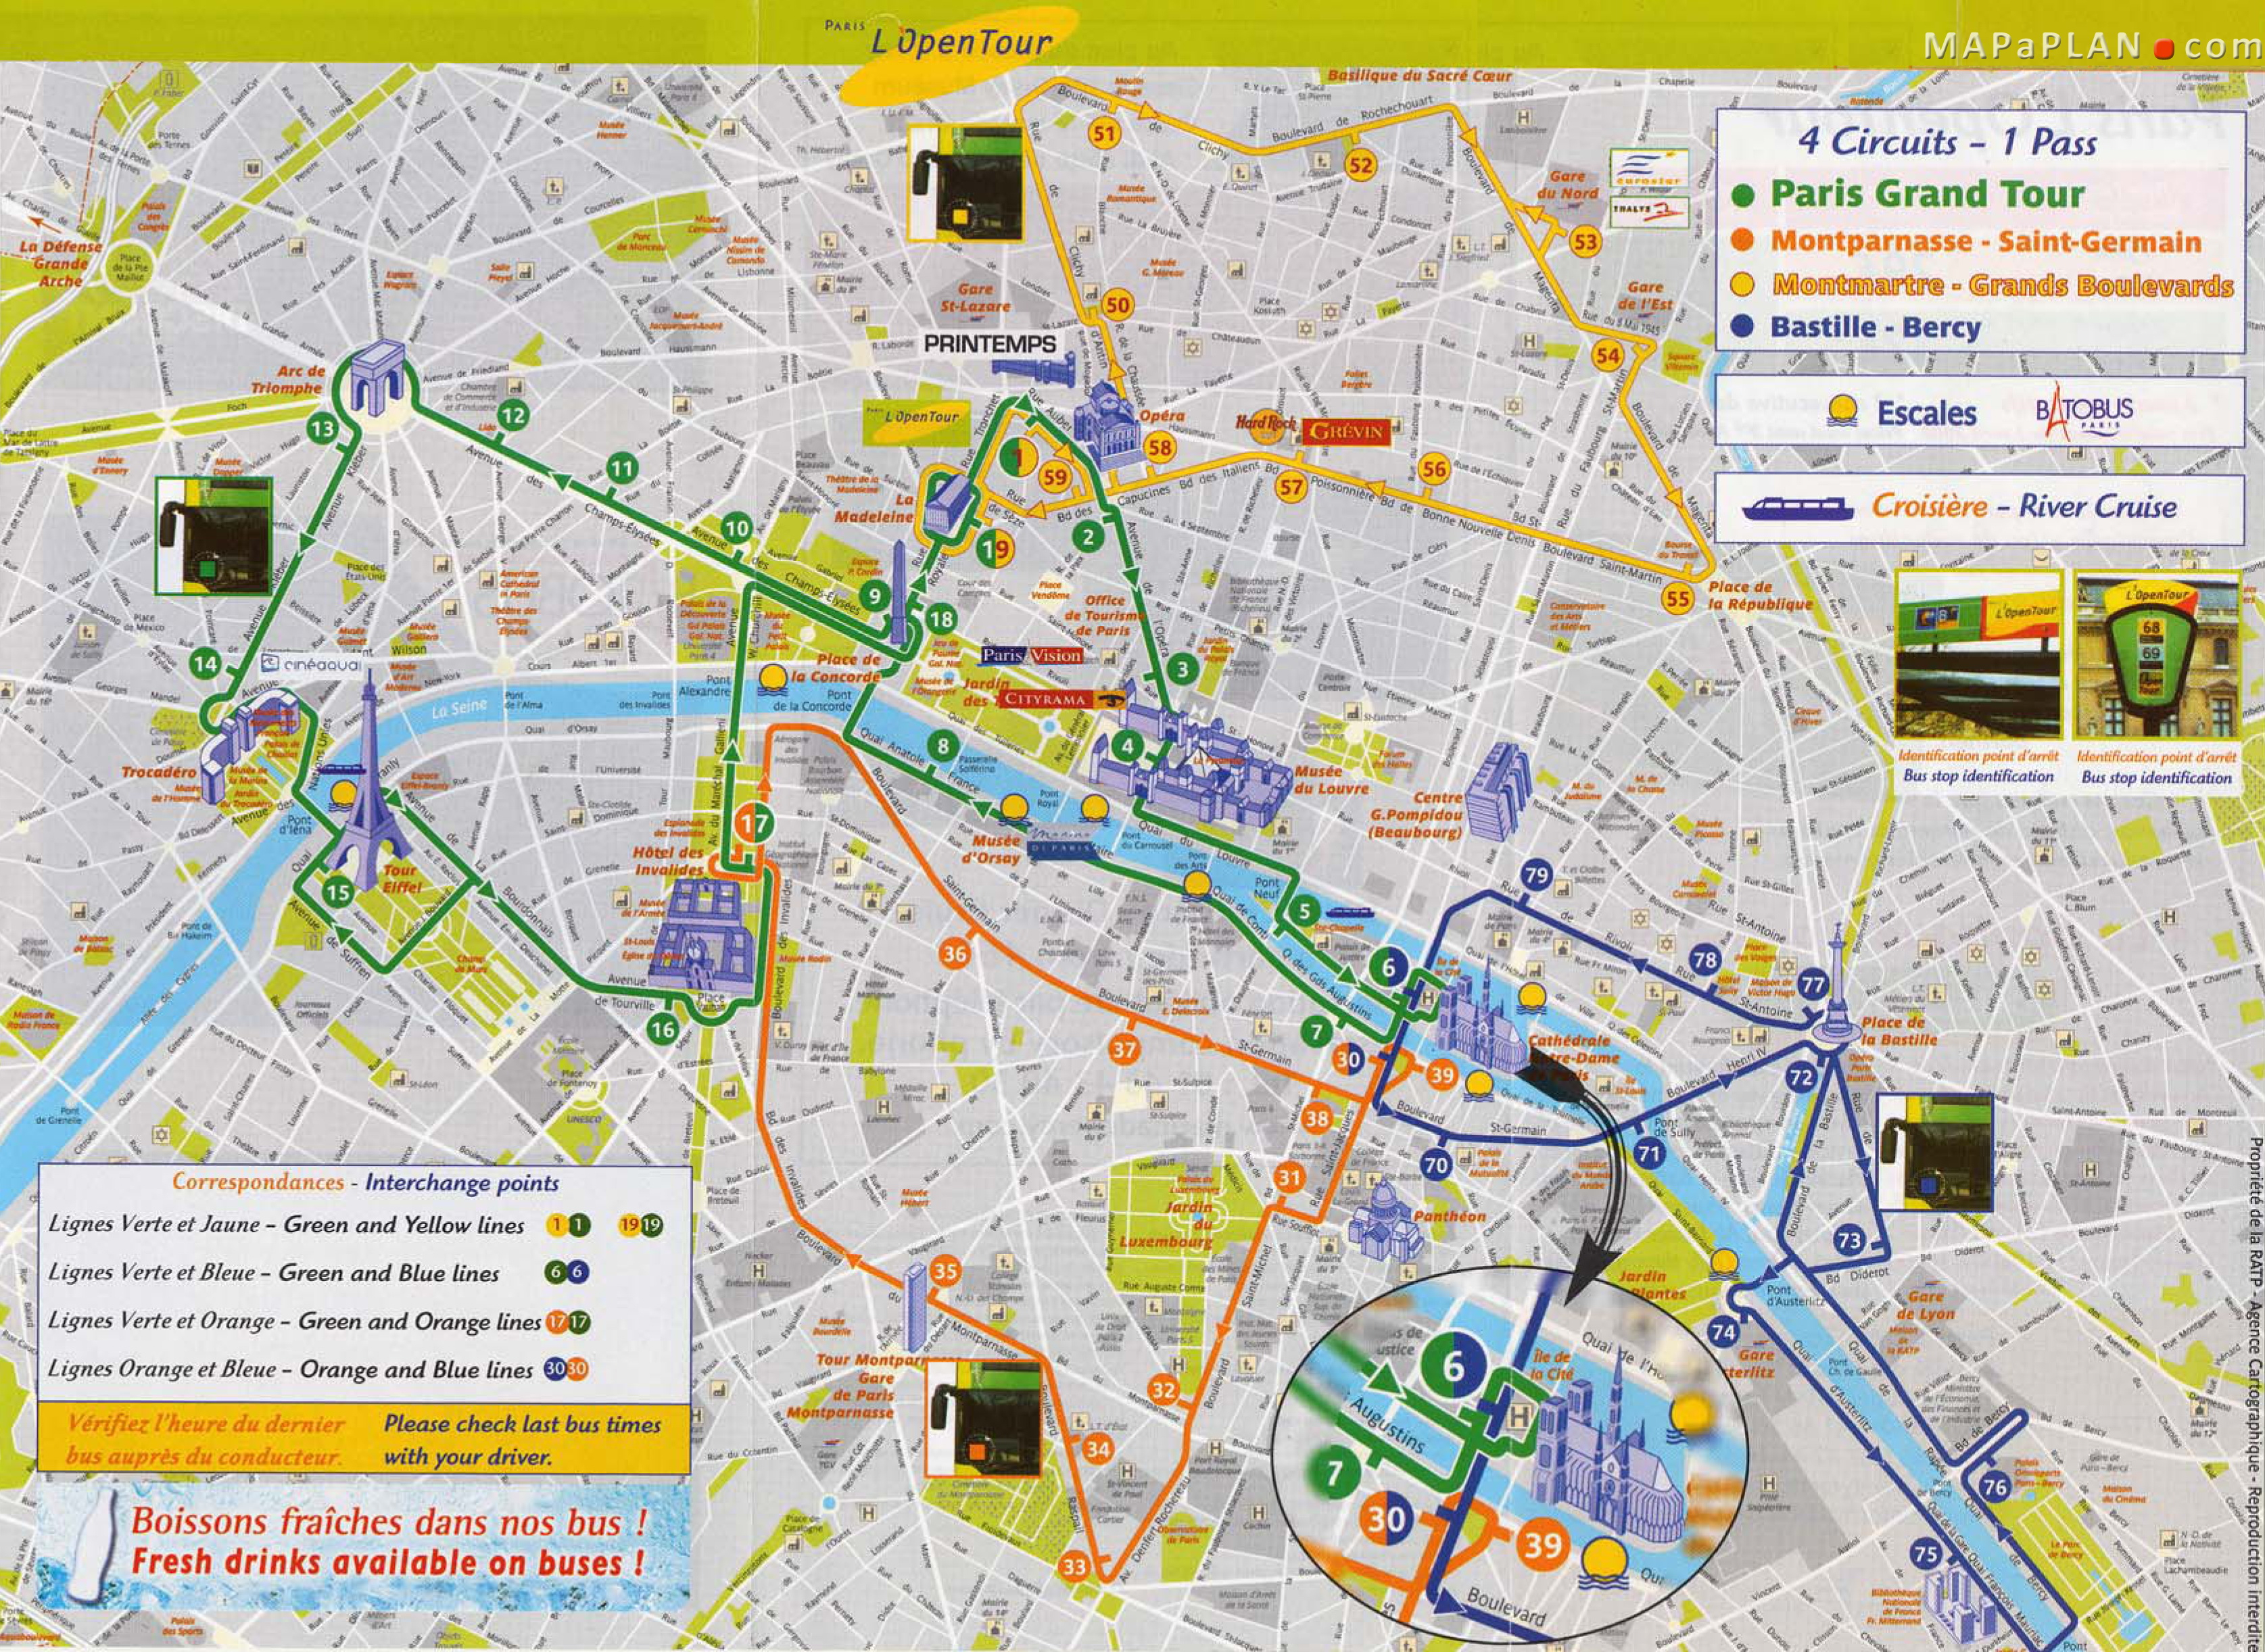 Printable Map Of Paris Download Map Paris And Attractions | Travel - Paris Printable Maps For Tourists